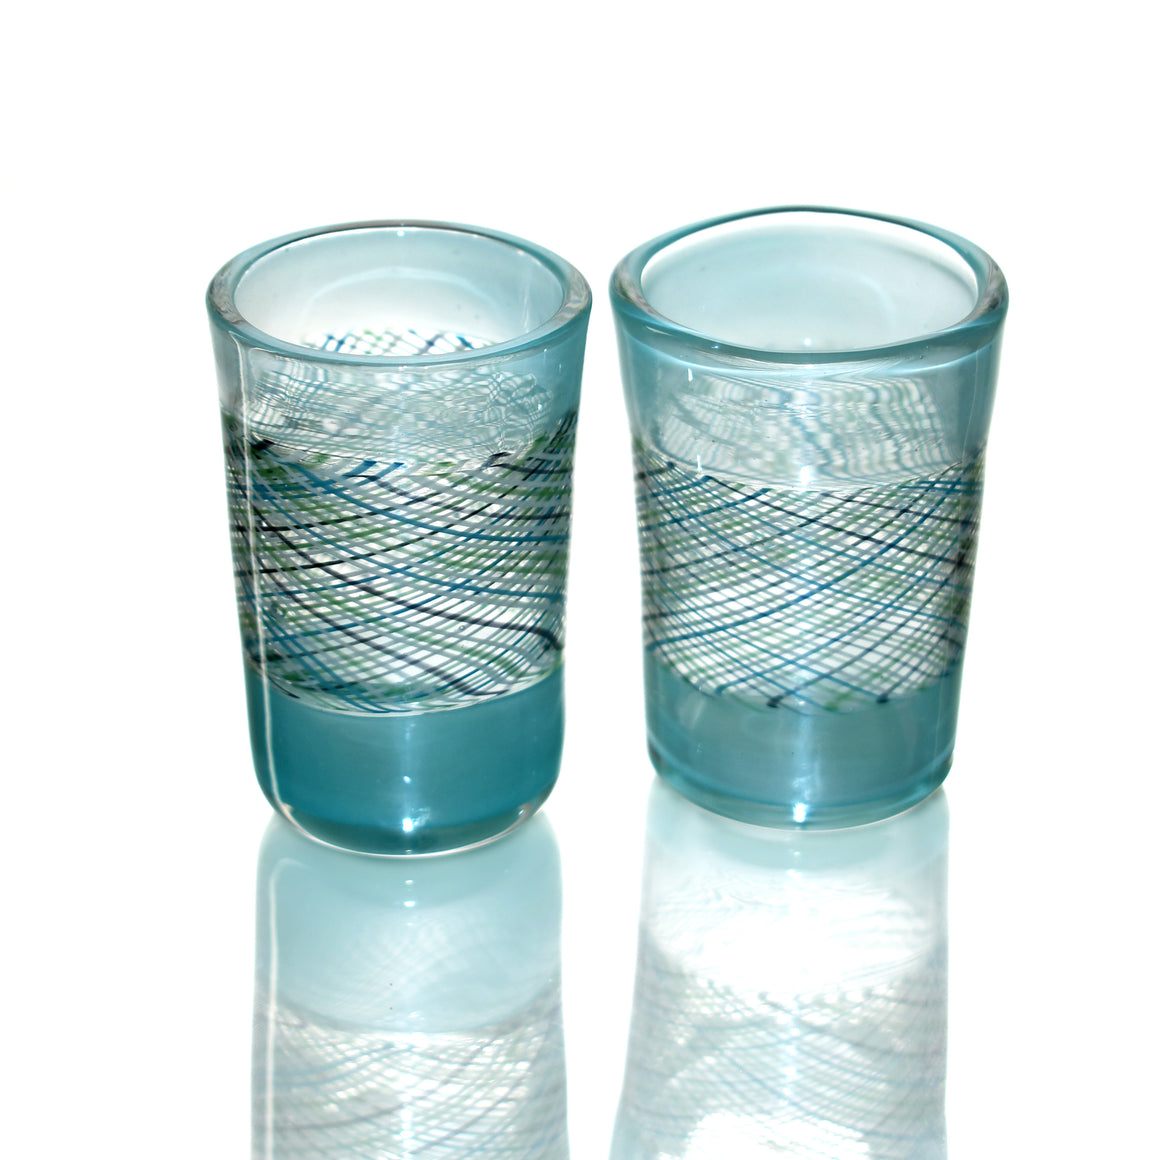 Fully-worked Shot Glass Set - Arctic Blue/Icy Reticello